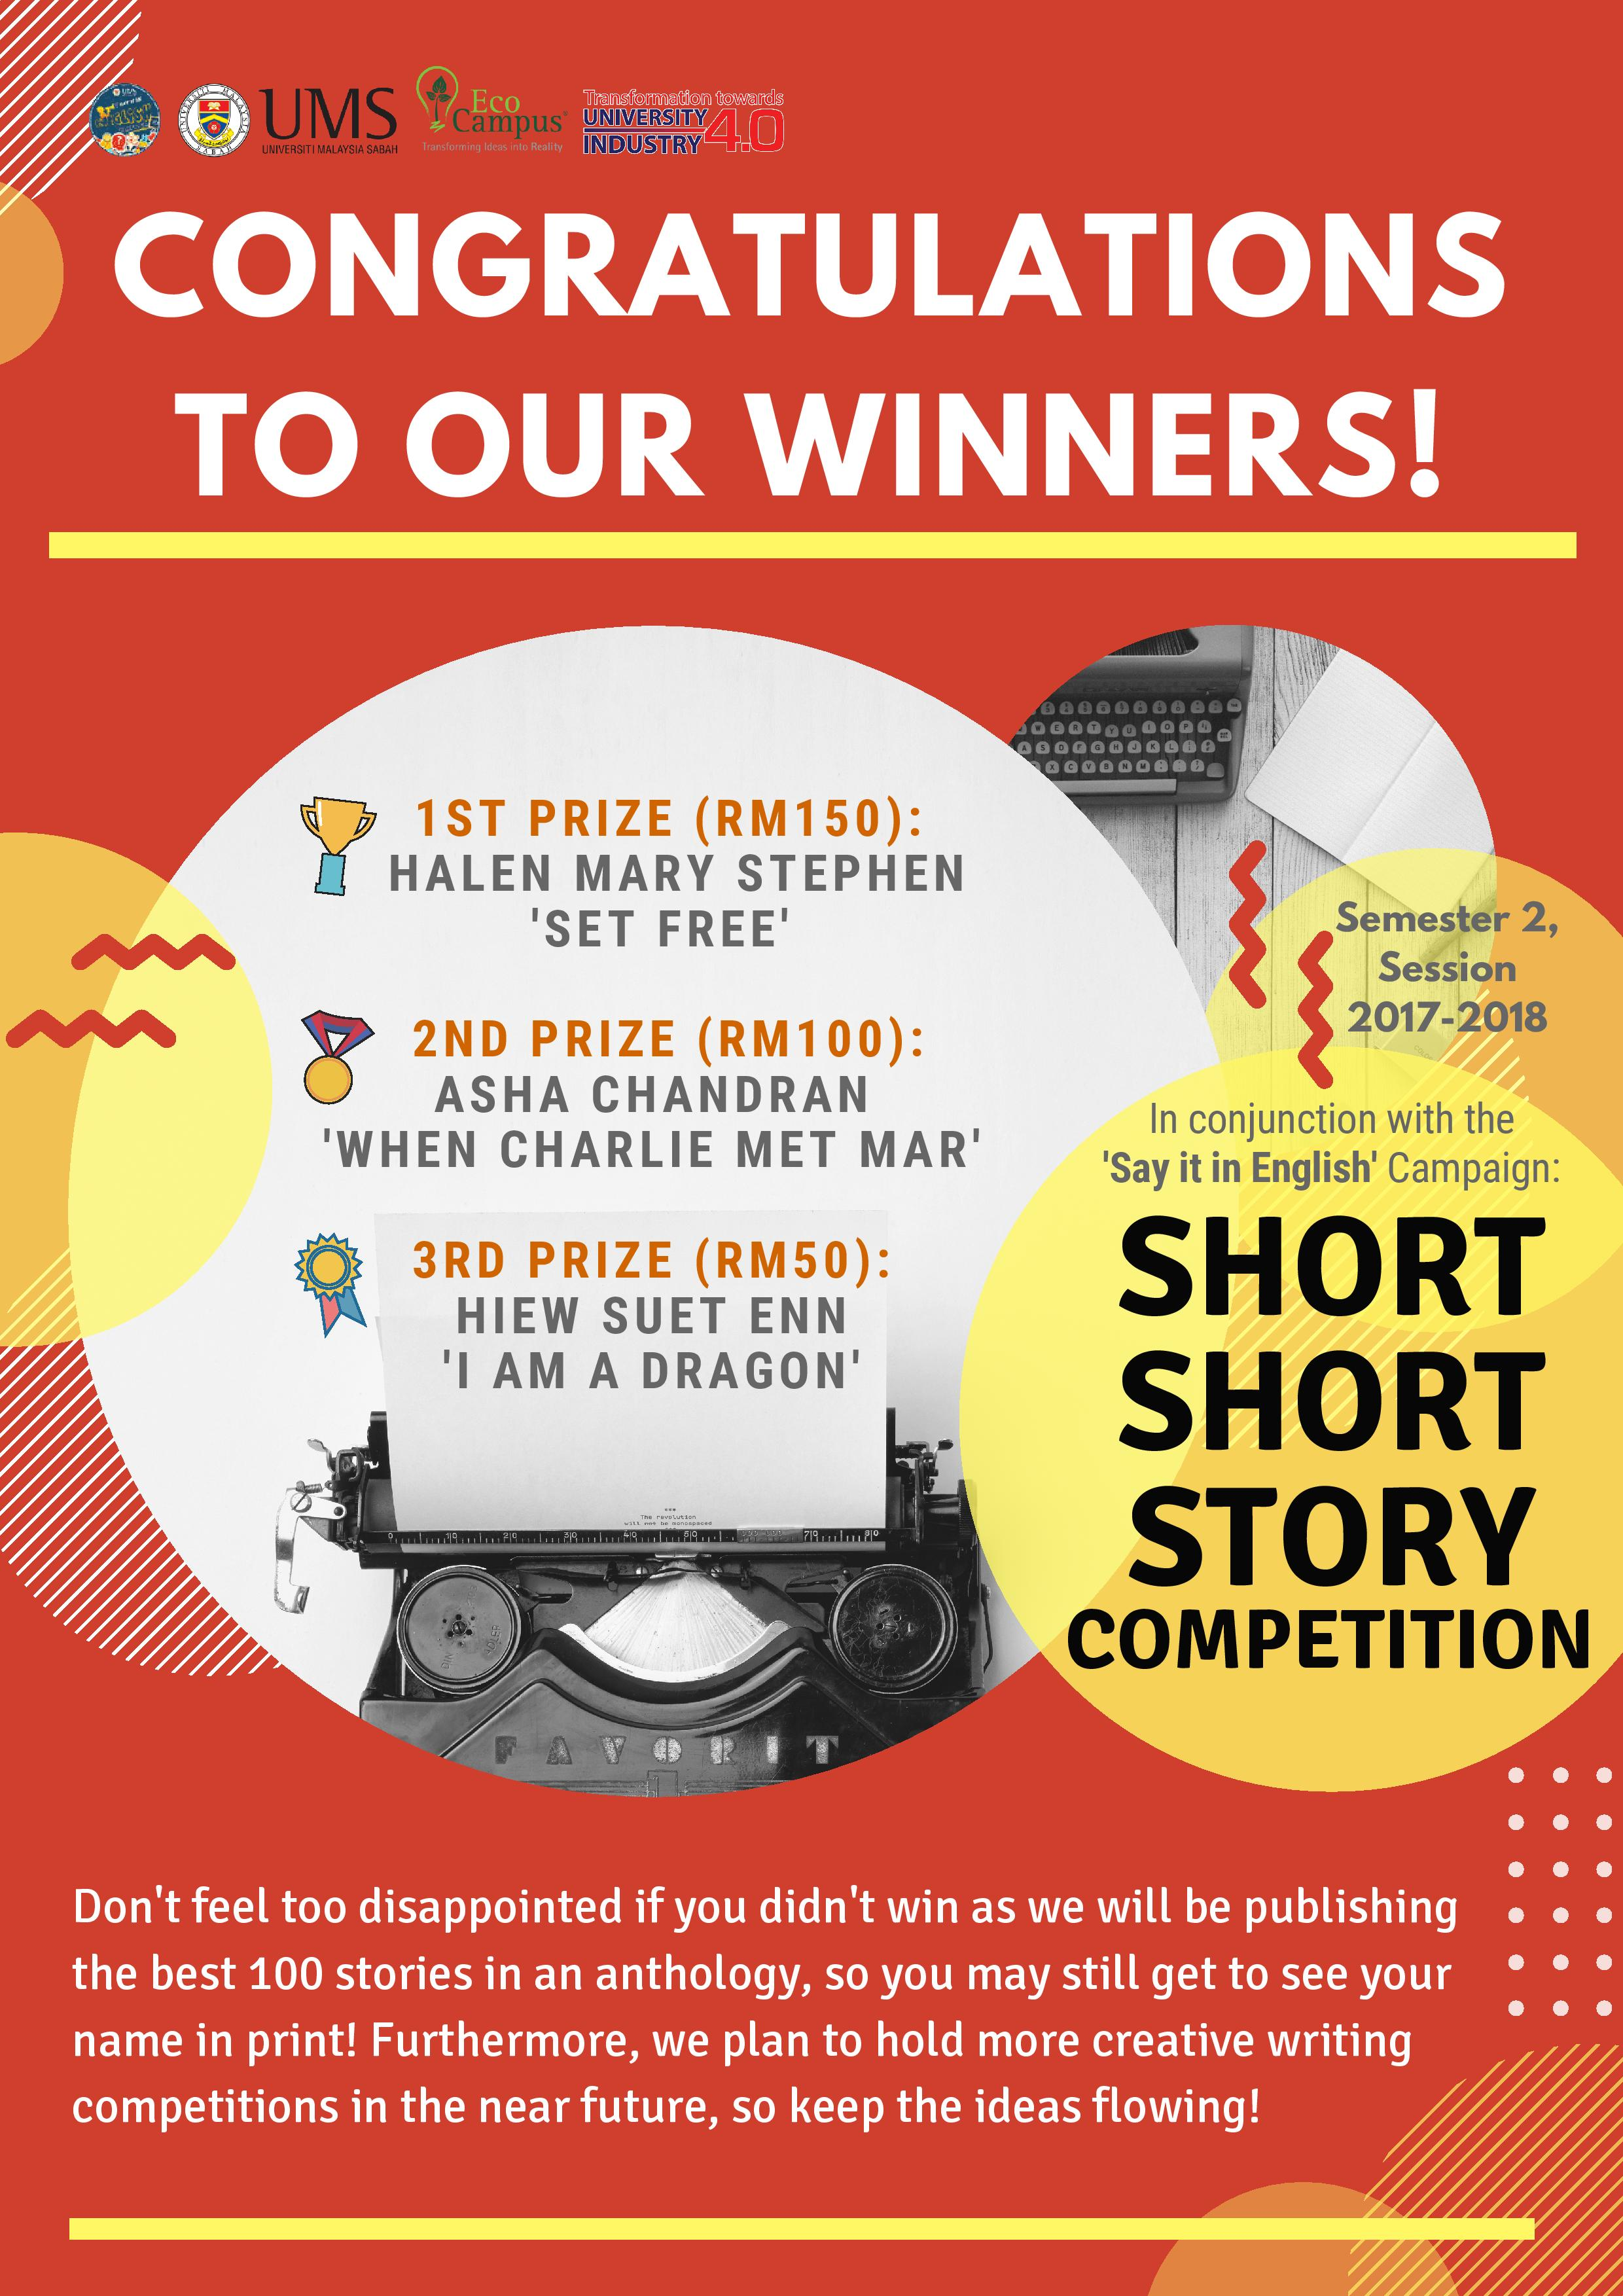 UMS - SHORT SHORT STORY COMPETITION WINNERS